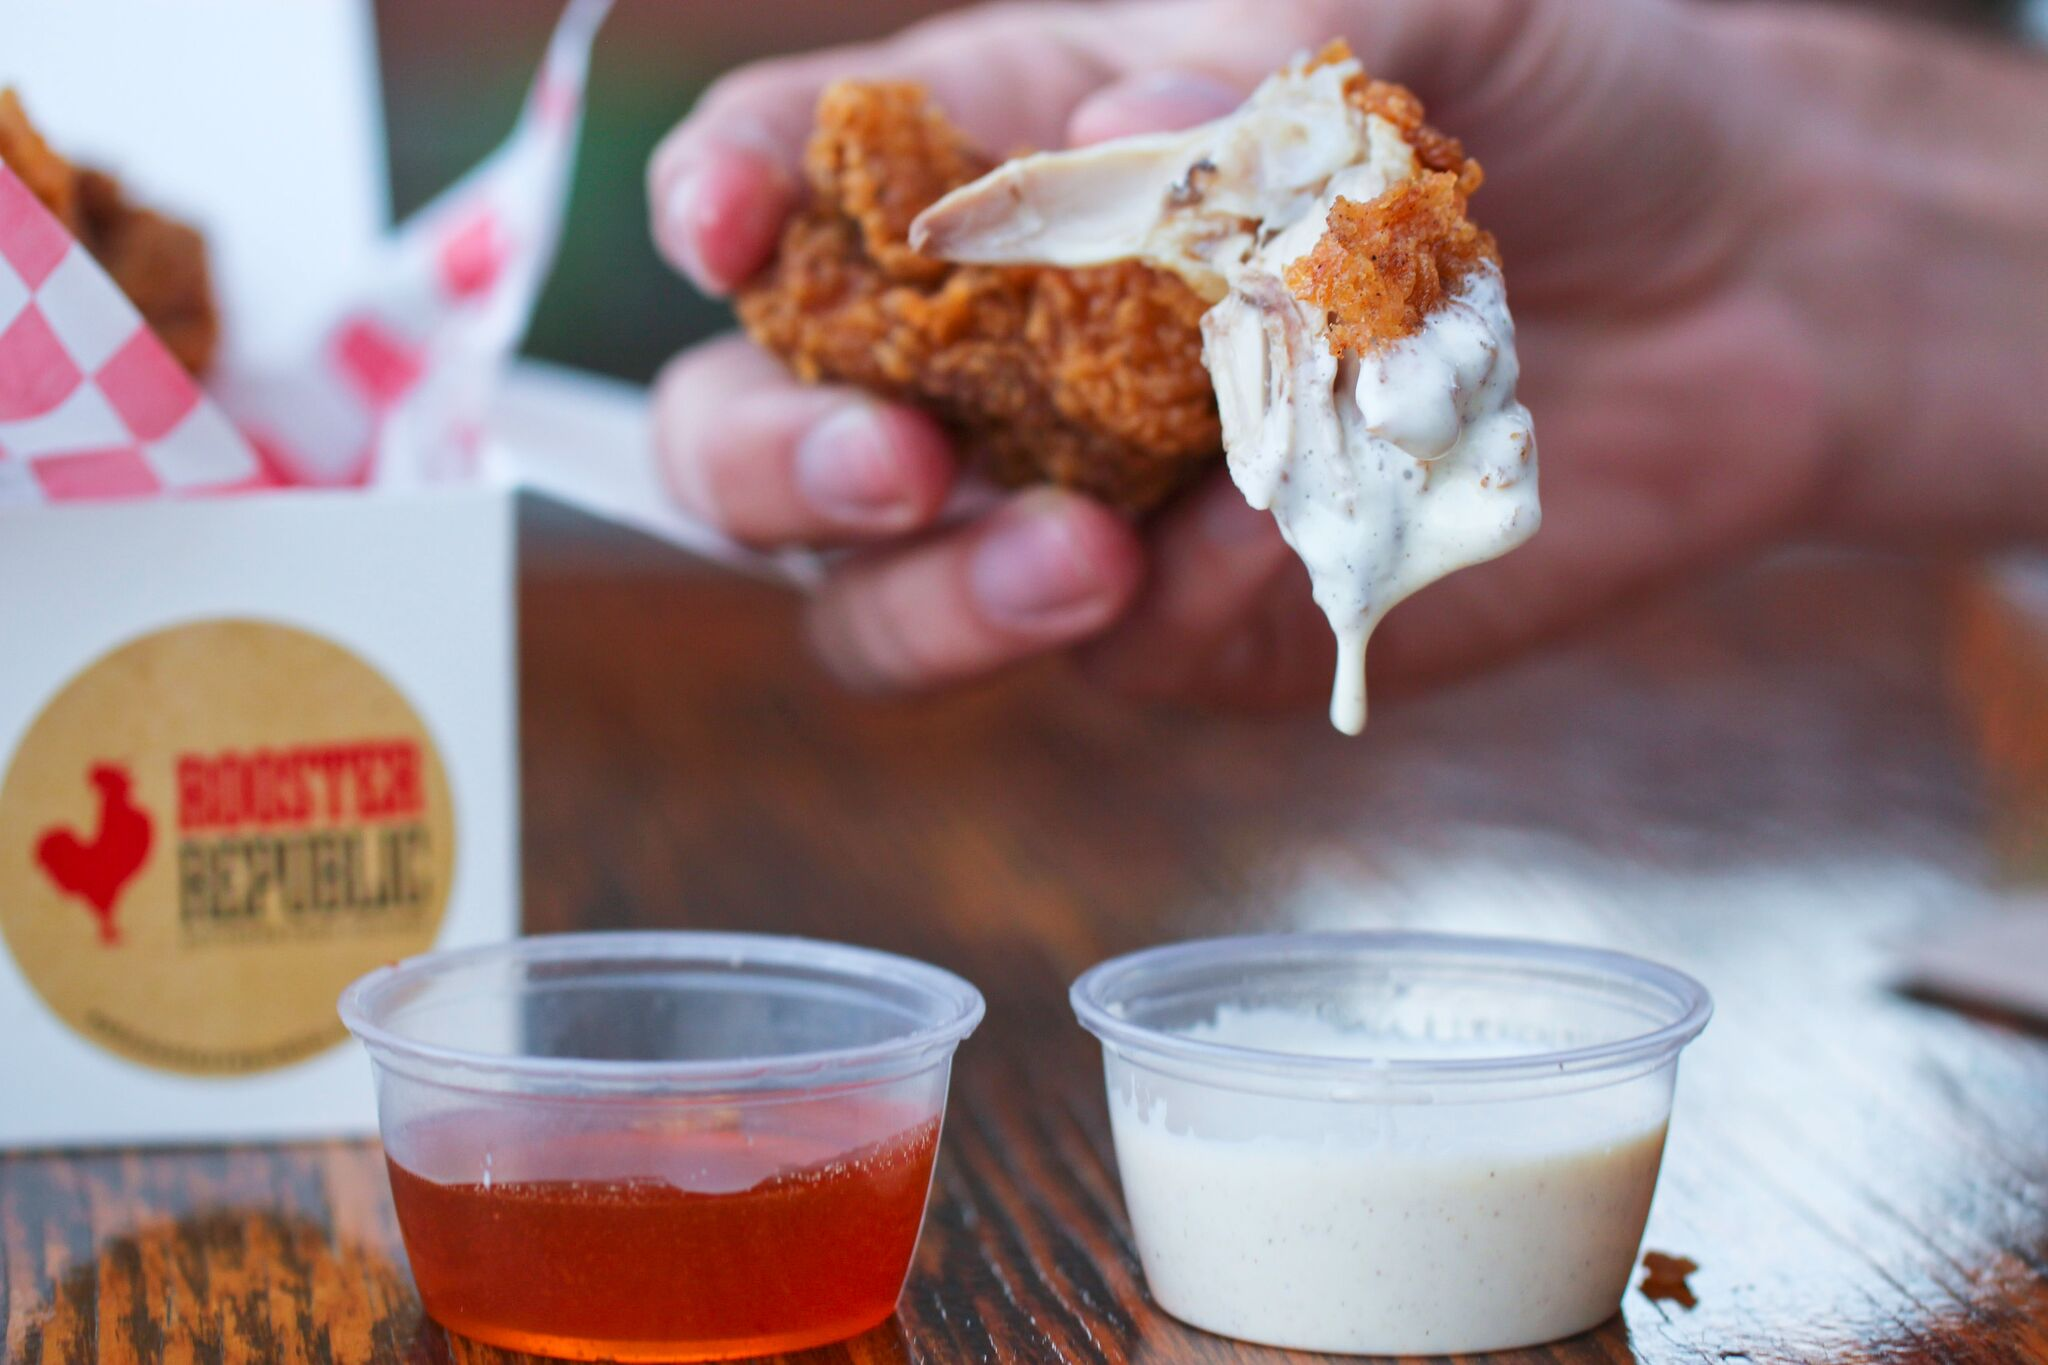 Rooster Republic's fried chicken takes a dip in their house-made white BBQ sauce | photo courtesy of Rooster Republic